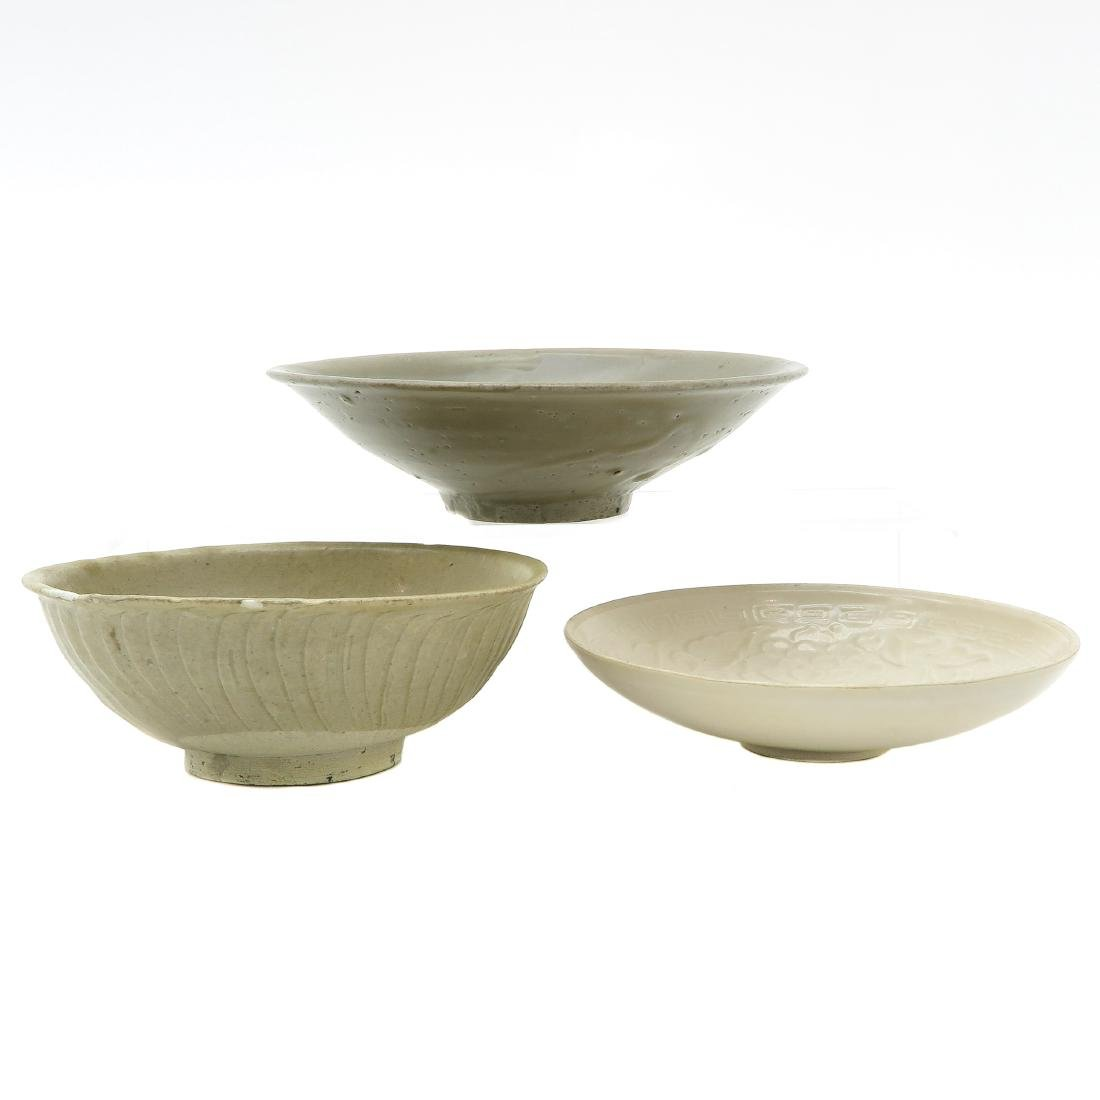 Lot of 3 Small Bowls